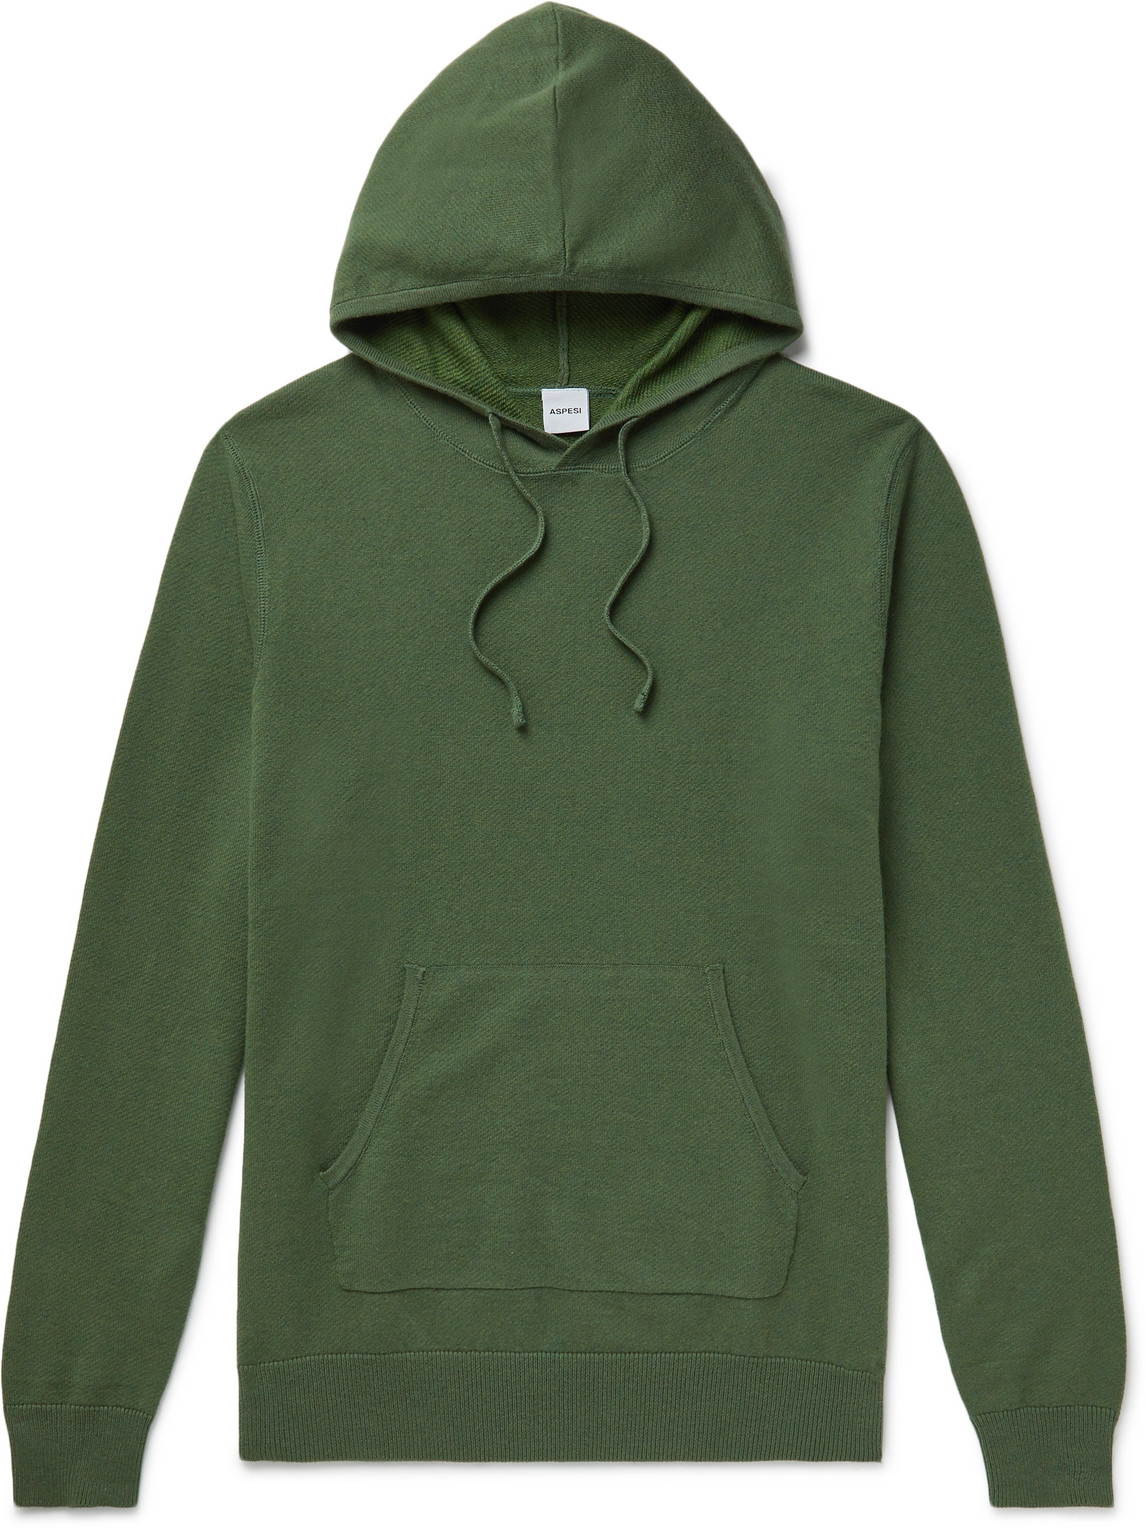 Aspesi - Cotton, Cashmere And Wool-Blend Hoodie - Men - Green - It 46